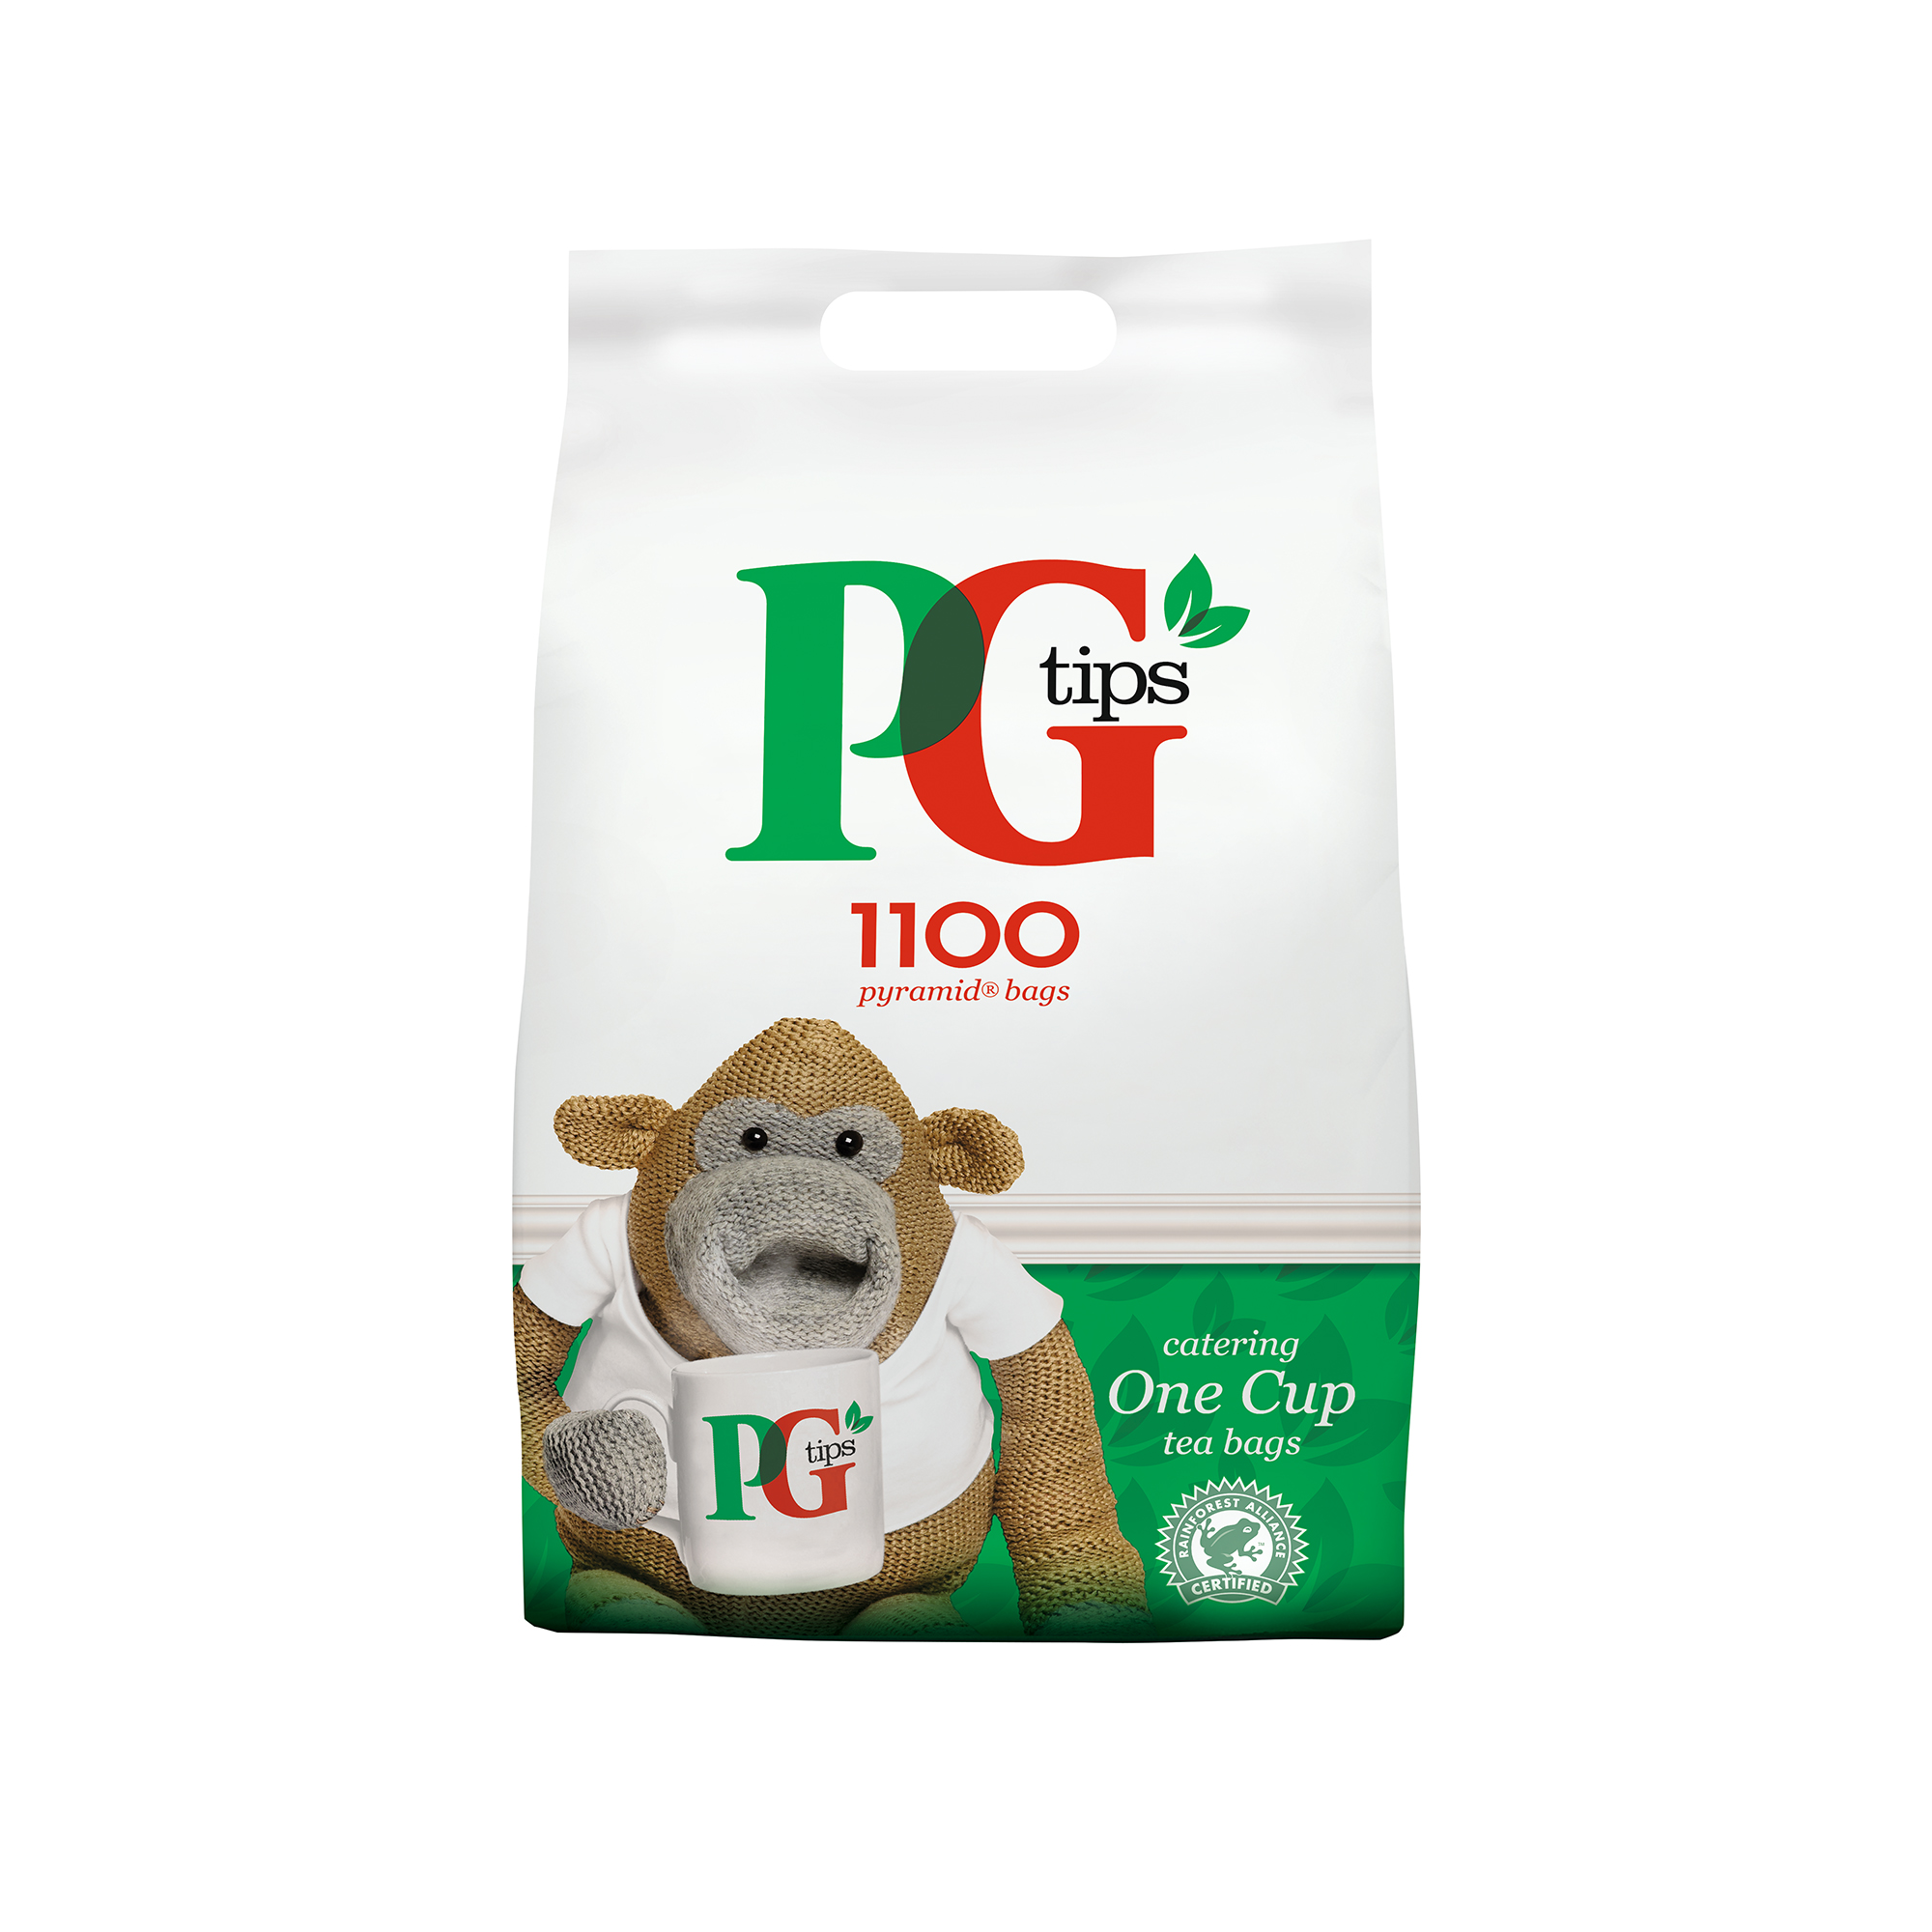 PG Tips Tea Bags Pyramid 1 Cup Ref 67395661 [Pack 1100]